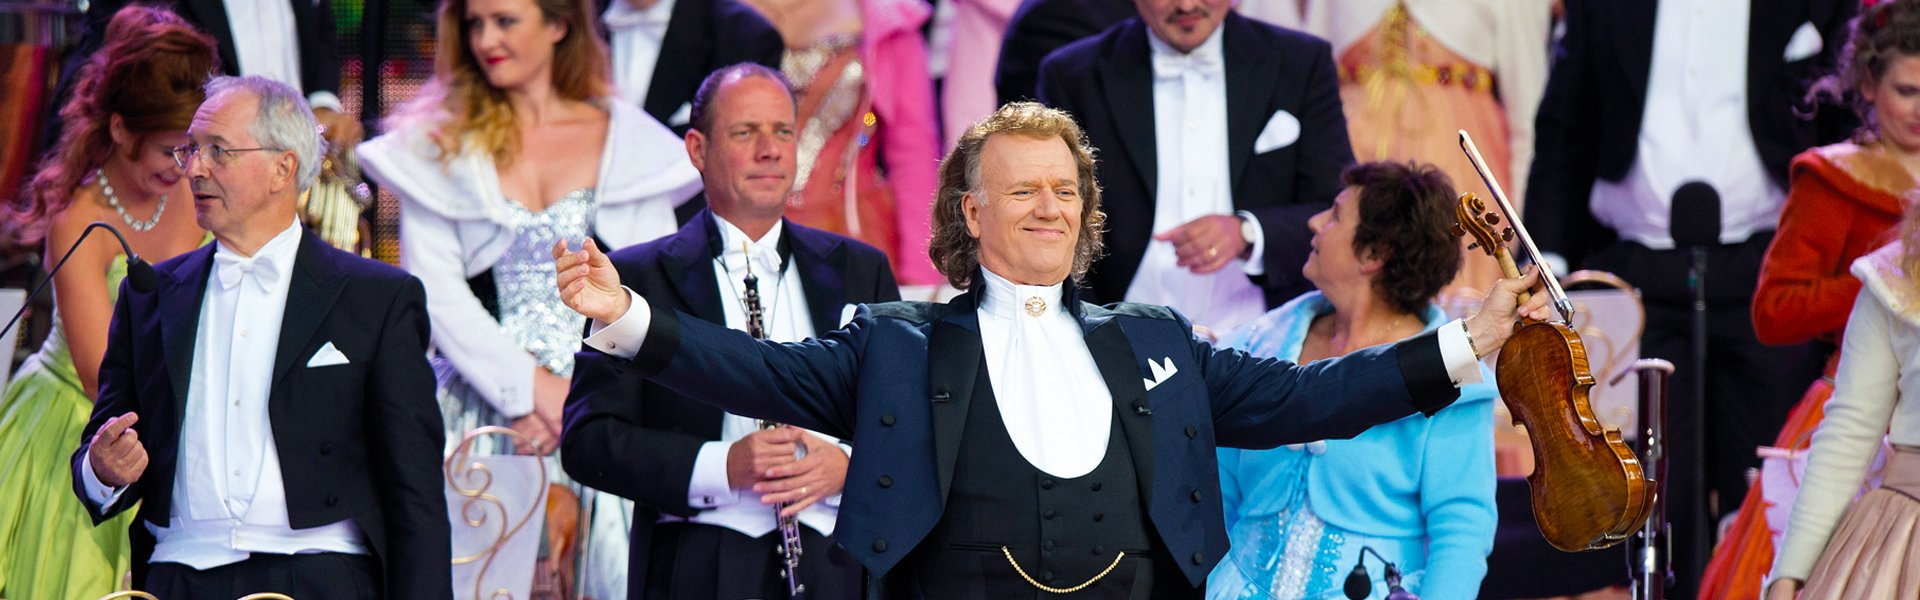 Een concert van André Rieu in Wenen, Oostenrijk (Copyright © 1999 - 2019 André Rieu Productions BV - All Rights Reserved)